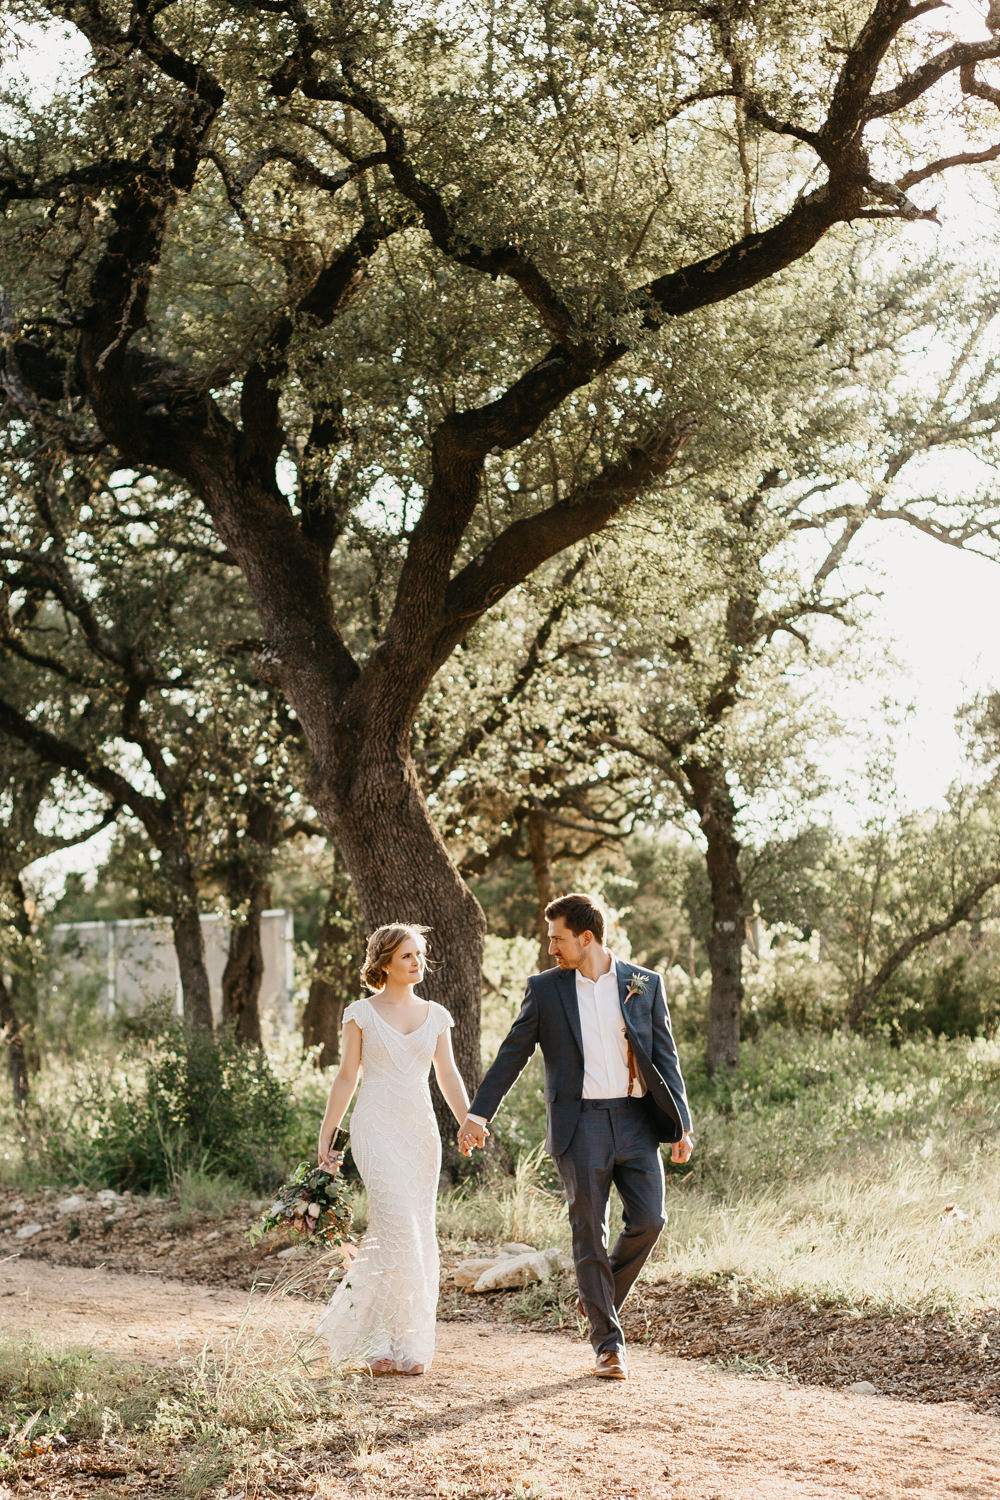 anna szczekutowicz adventure wedding photographer in austin texas prospect house wedding-150.jpg